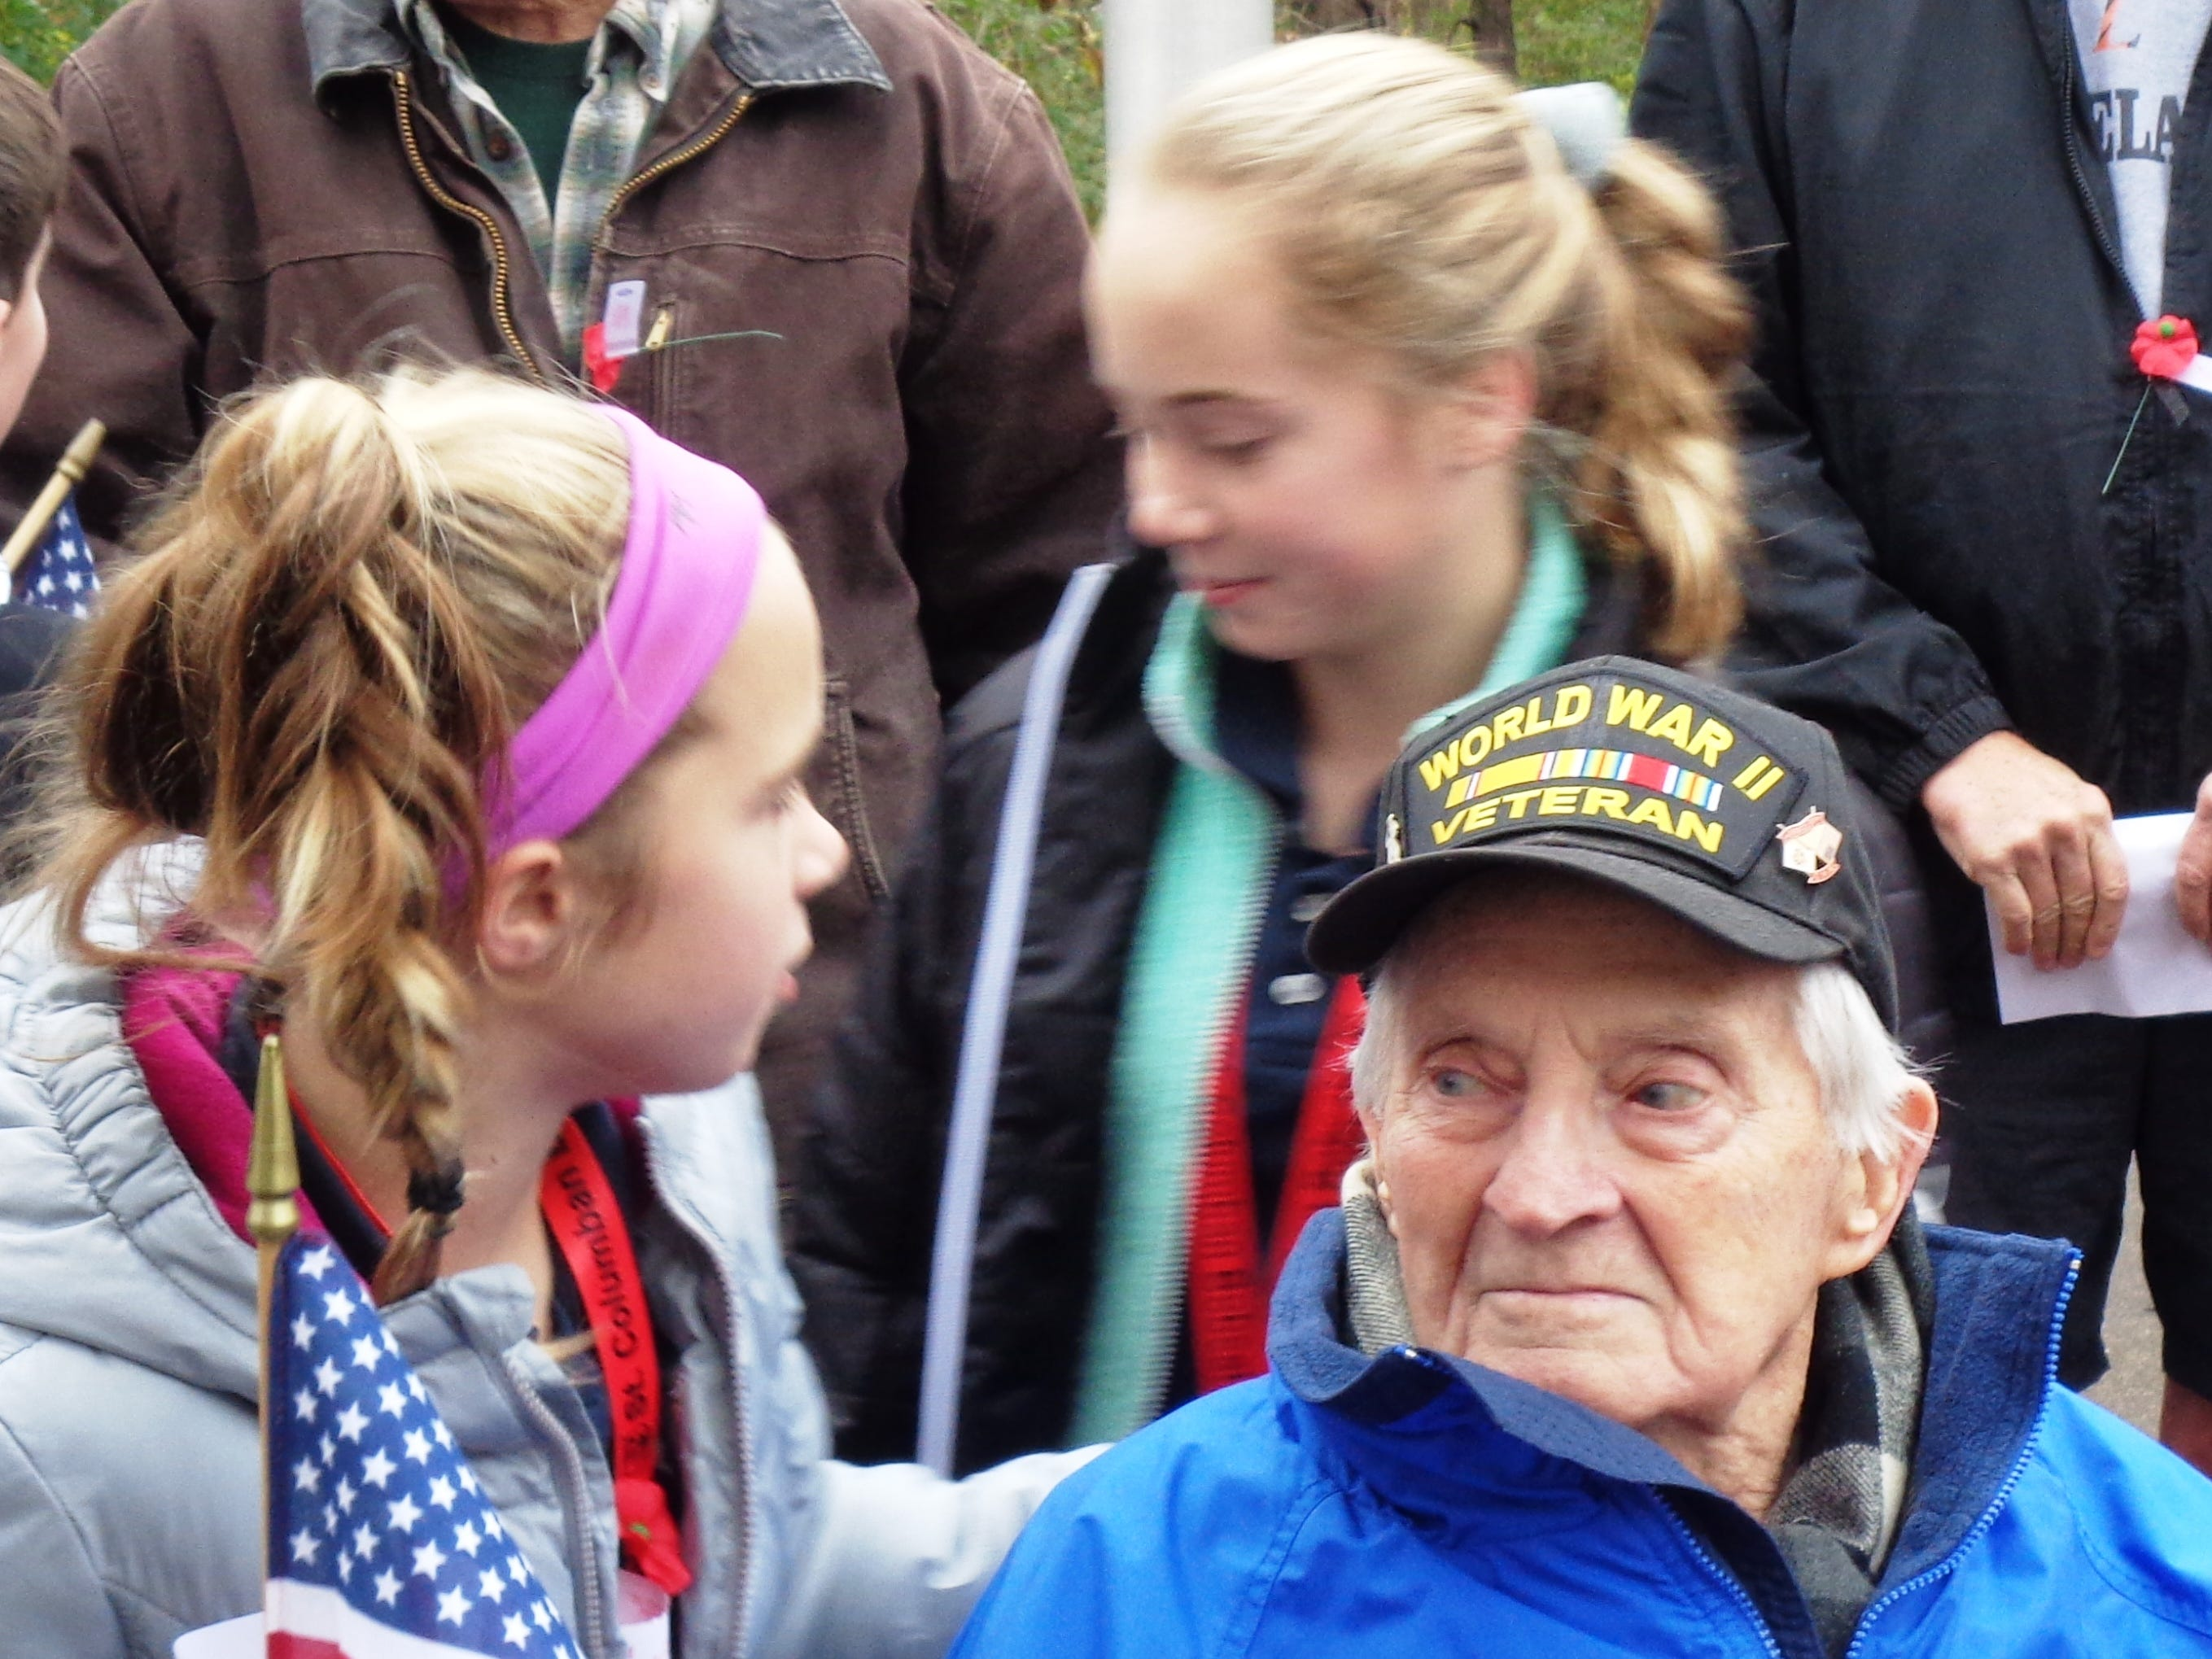 St. Columban students Reagan and Riley Ferris shared a hug with their grandfather World War II Navy veteran Ken Ferris at the ceremony honoring veterans in Loveland, Ohio Friday, Nov. 9, 2018.